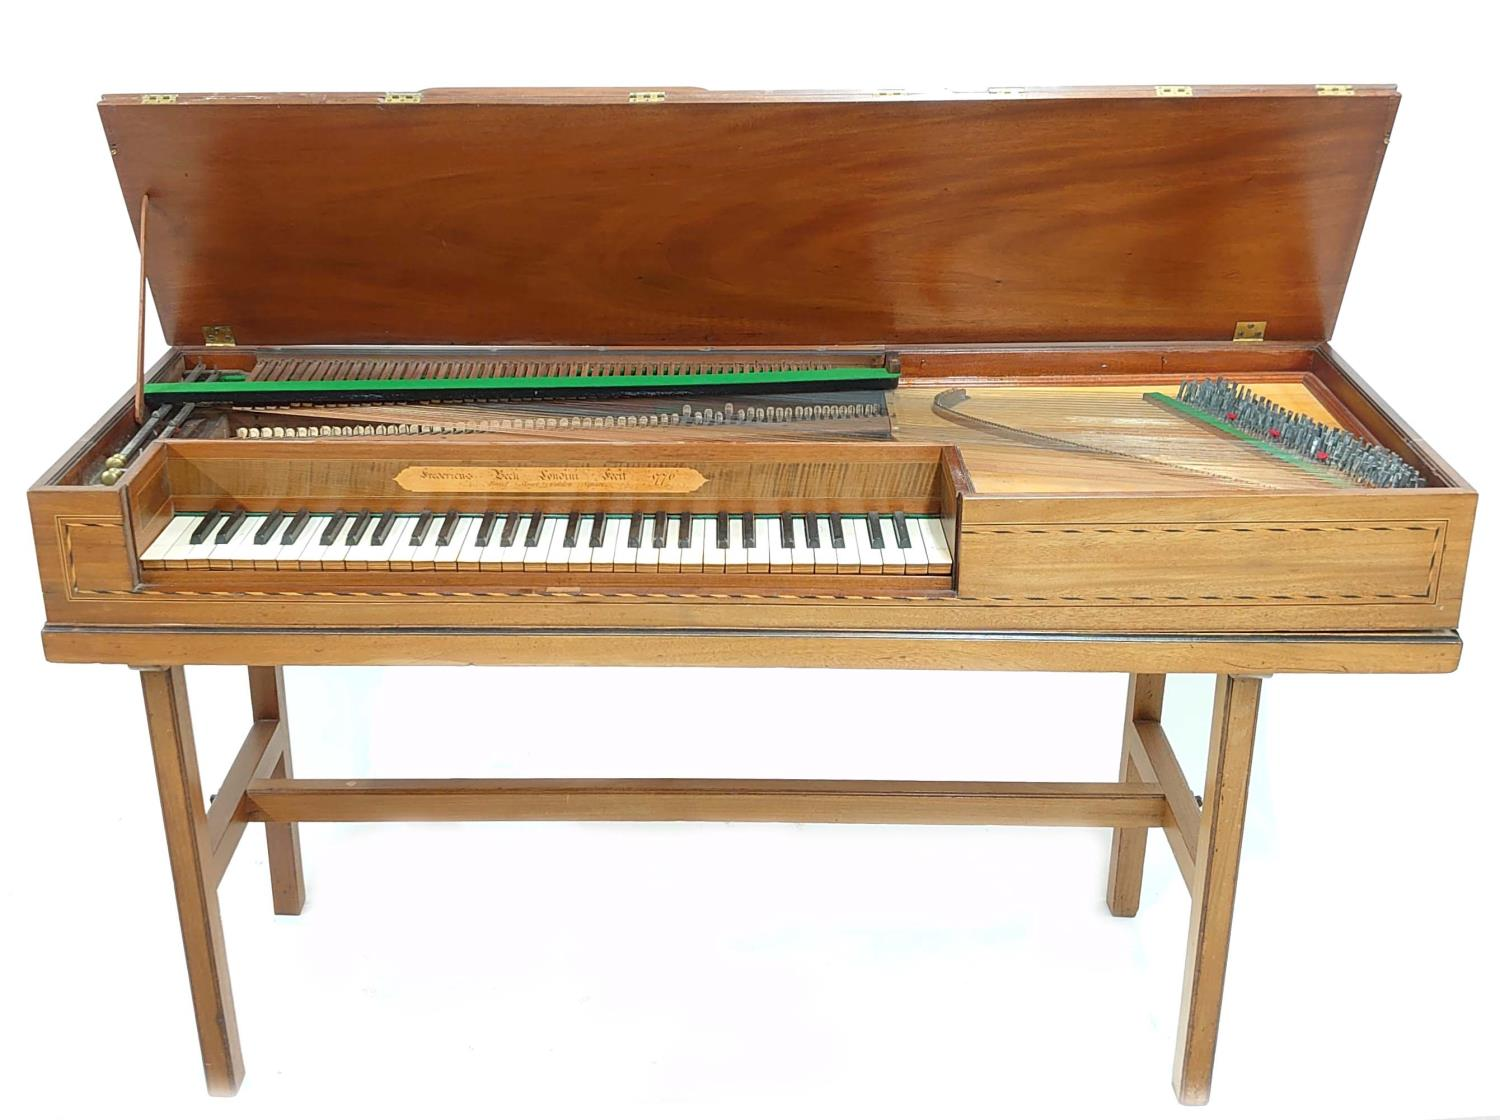 Square piano by Frederick Beck, London 1776, the case of mahogany with chequered stringing, the